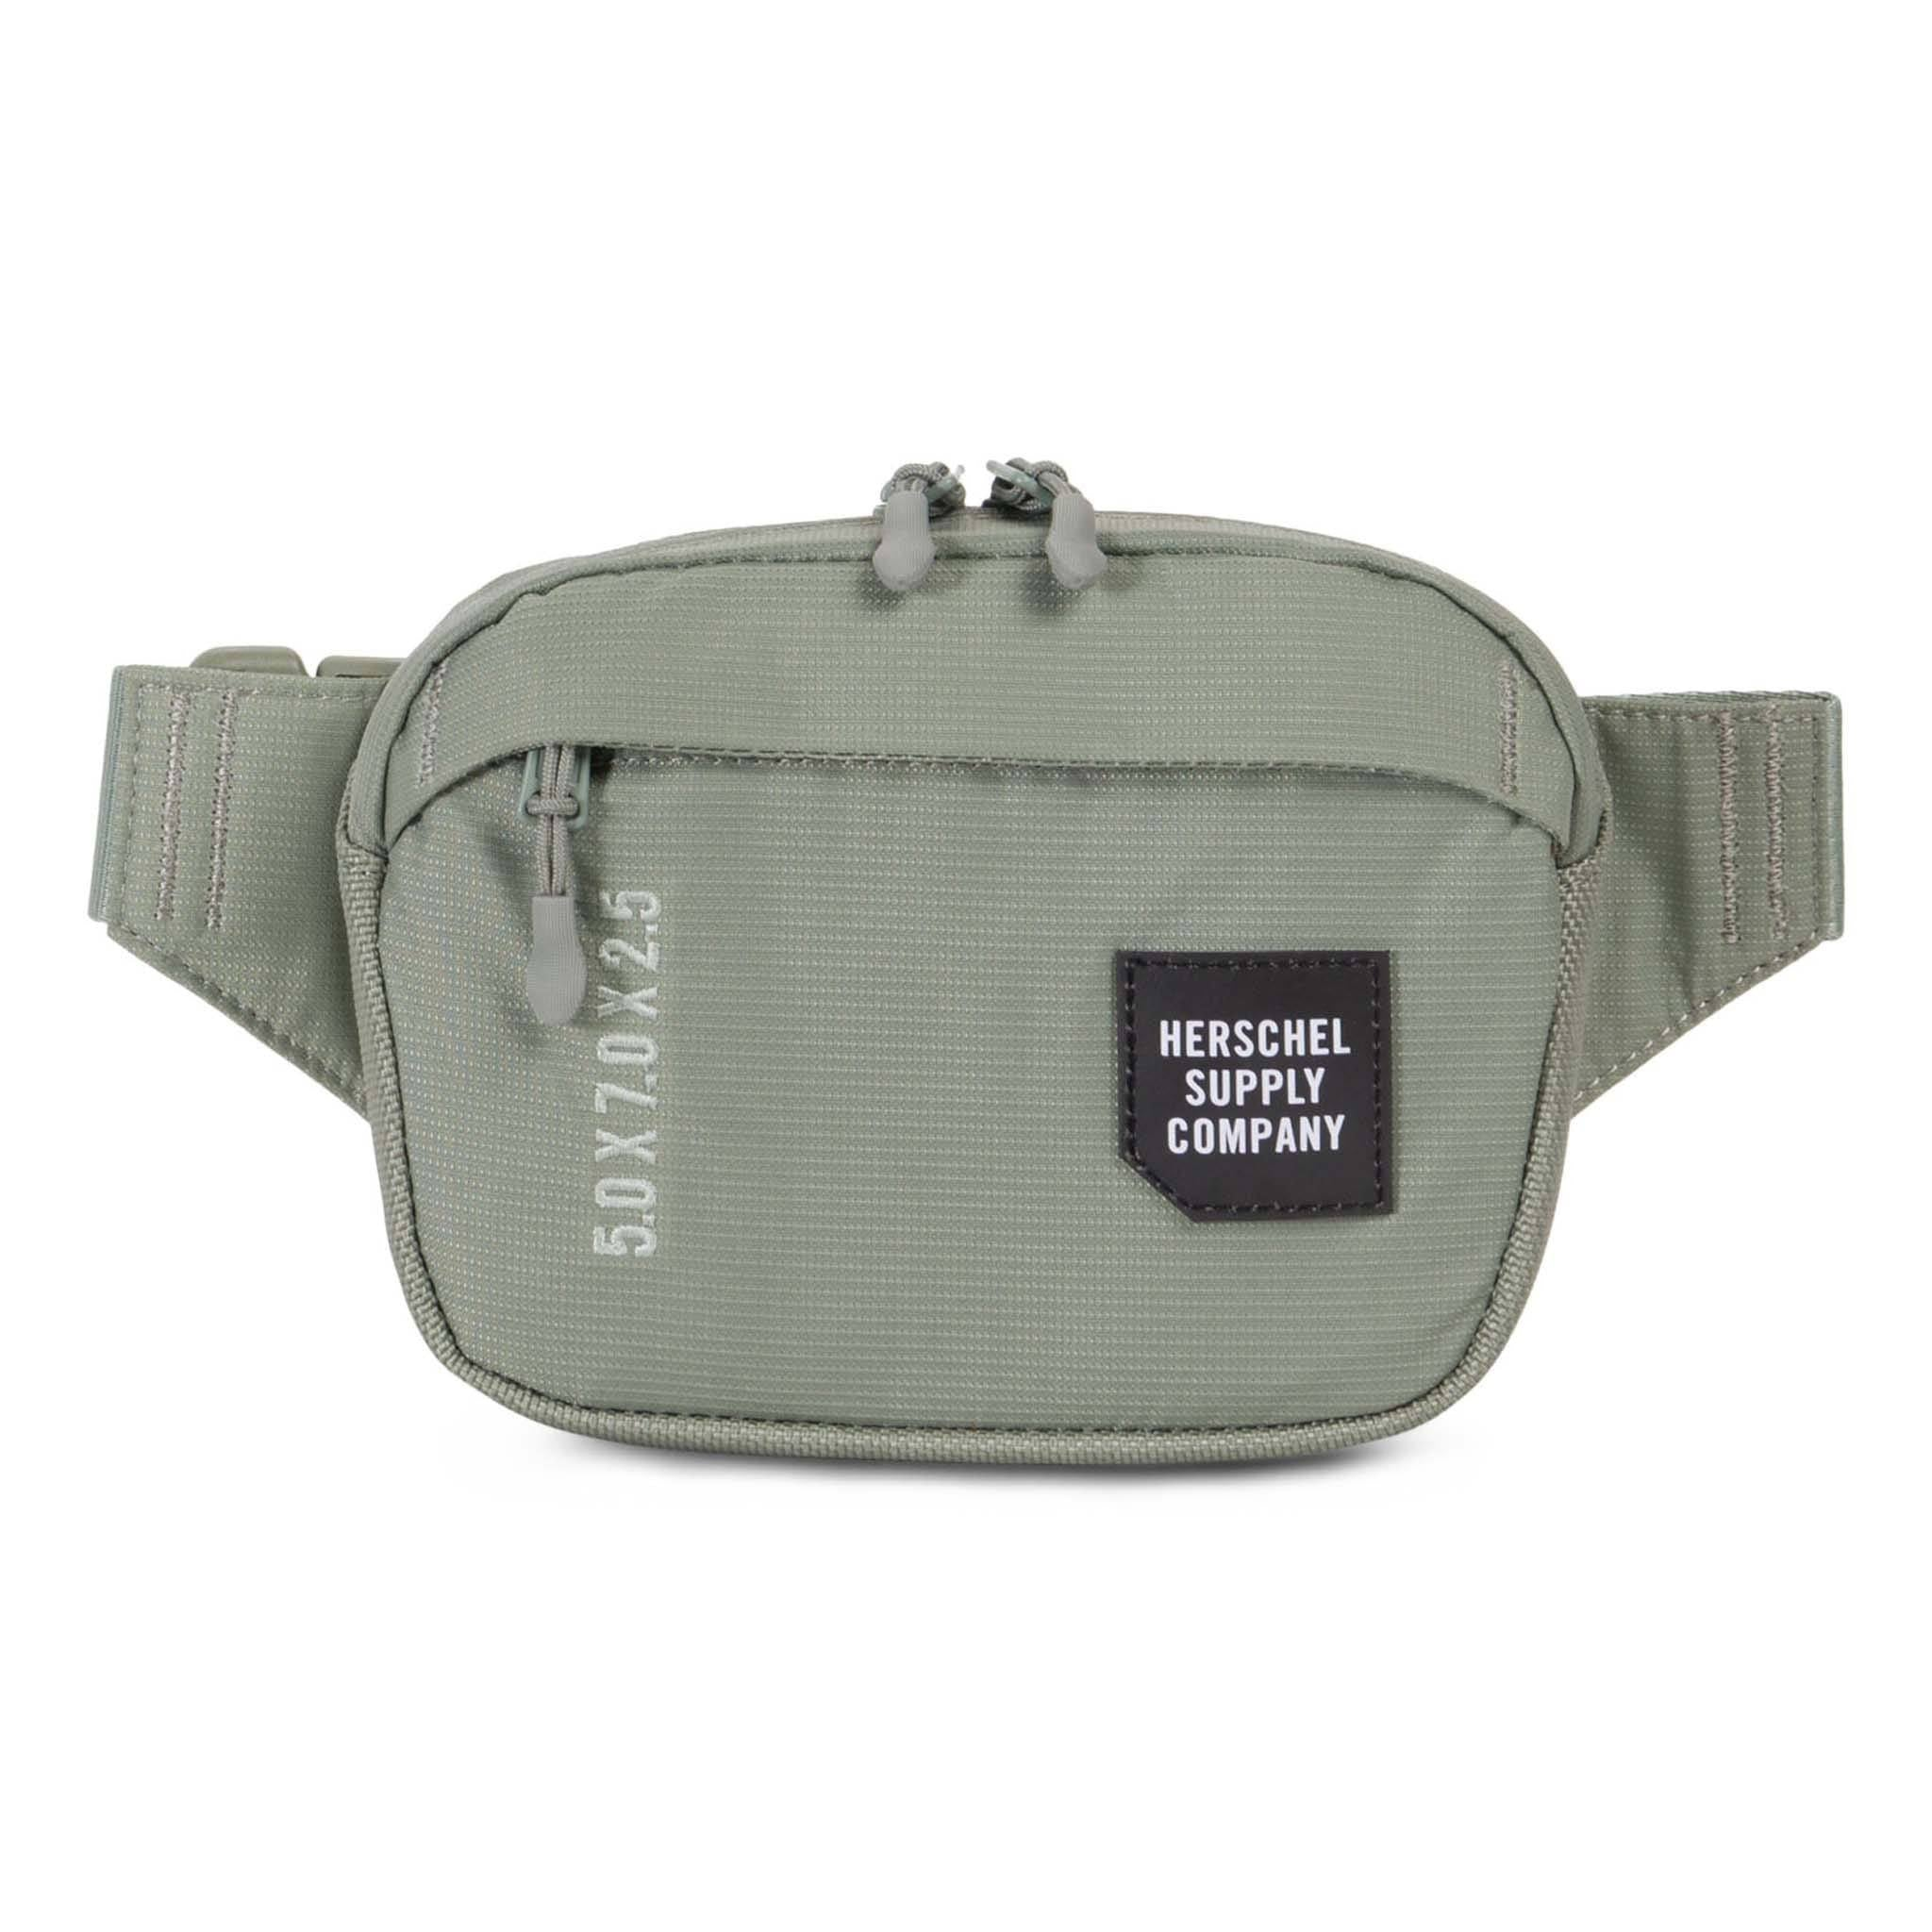 Herschel Supply Co. Tour Fanny pack - Shadow - Small